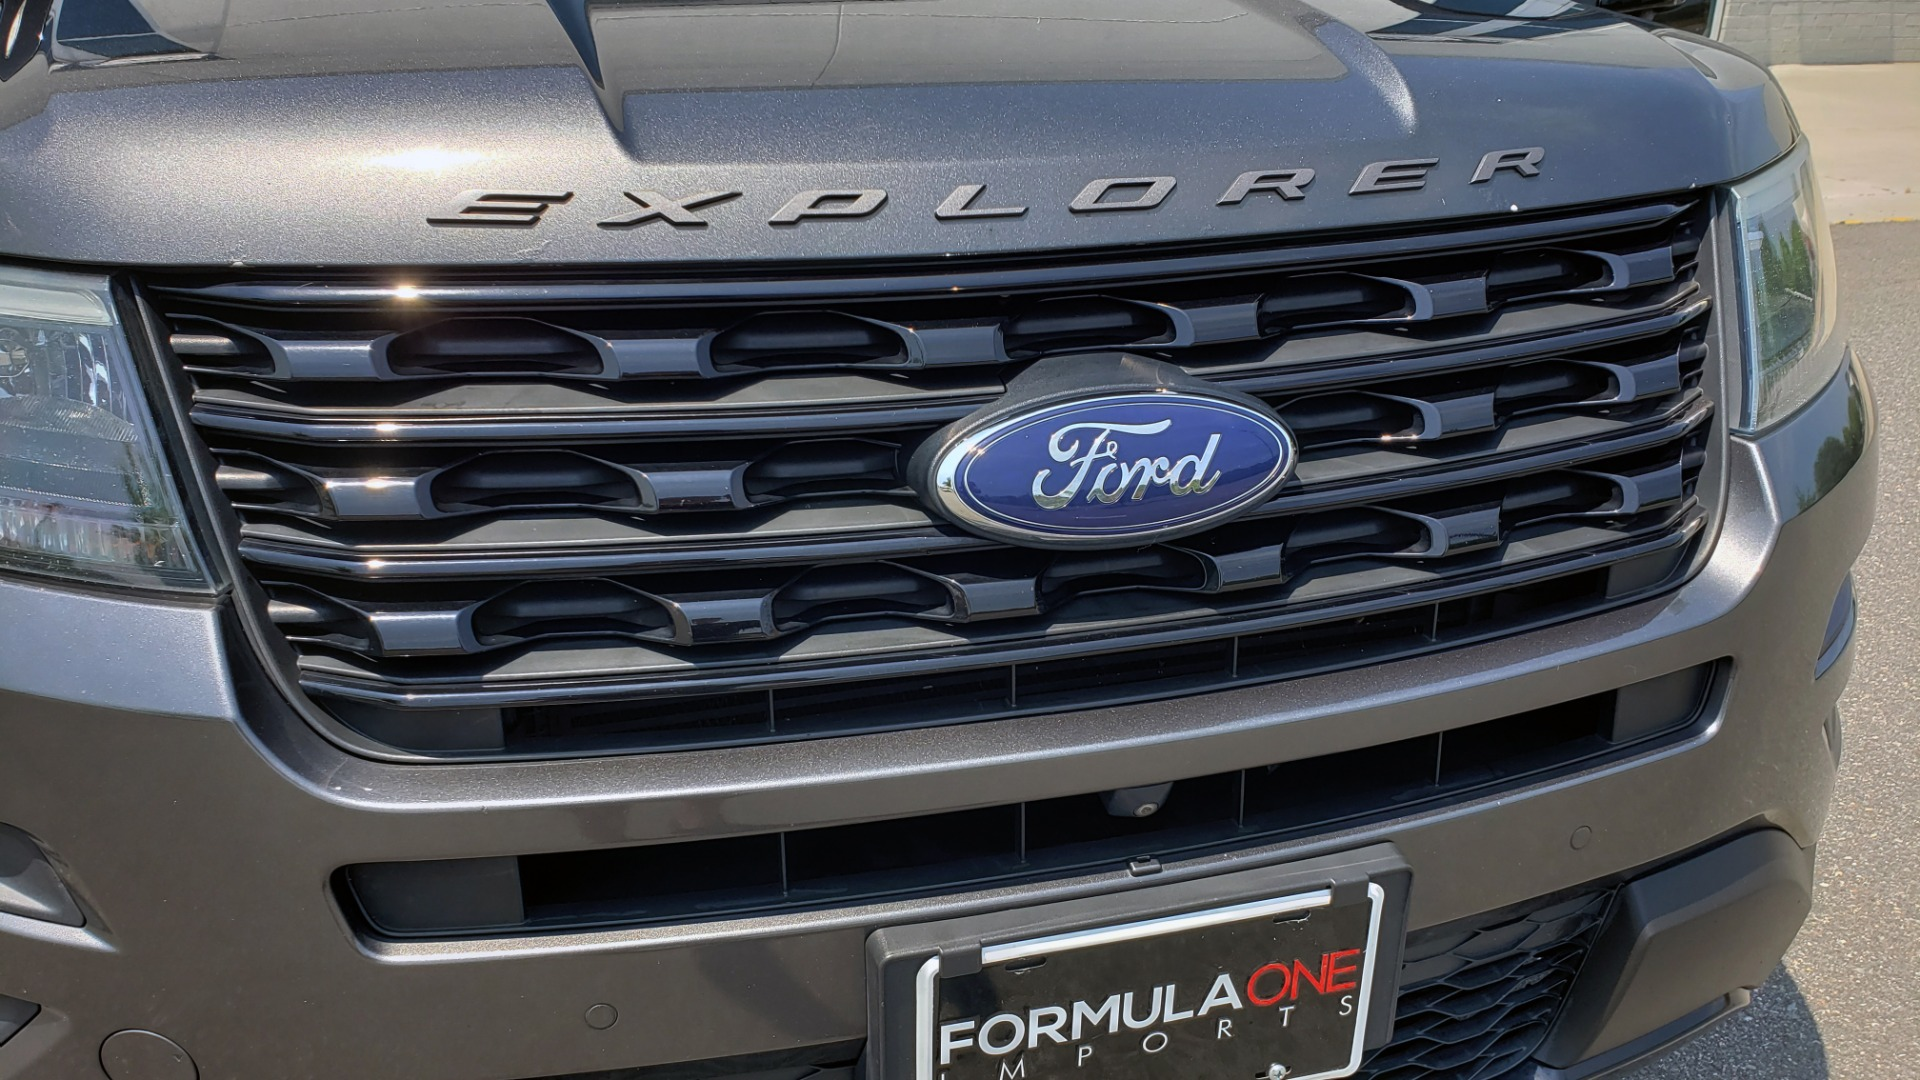 Used 2016 Ford EXPLORER SPORT 4WD / 3.5L ECOBOOST / 6-SPD AUTO / BSM / REARVIEW for sale Sold at Formula Imports in Charlotte NC 28227 23